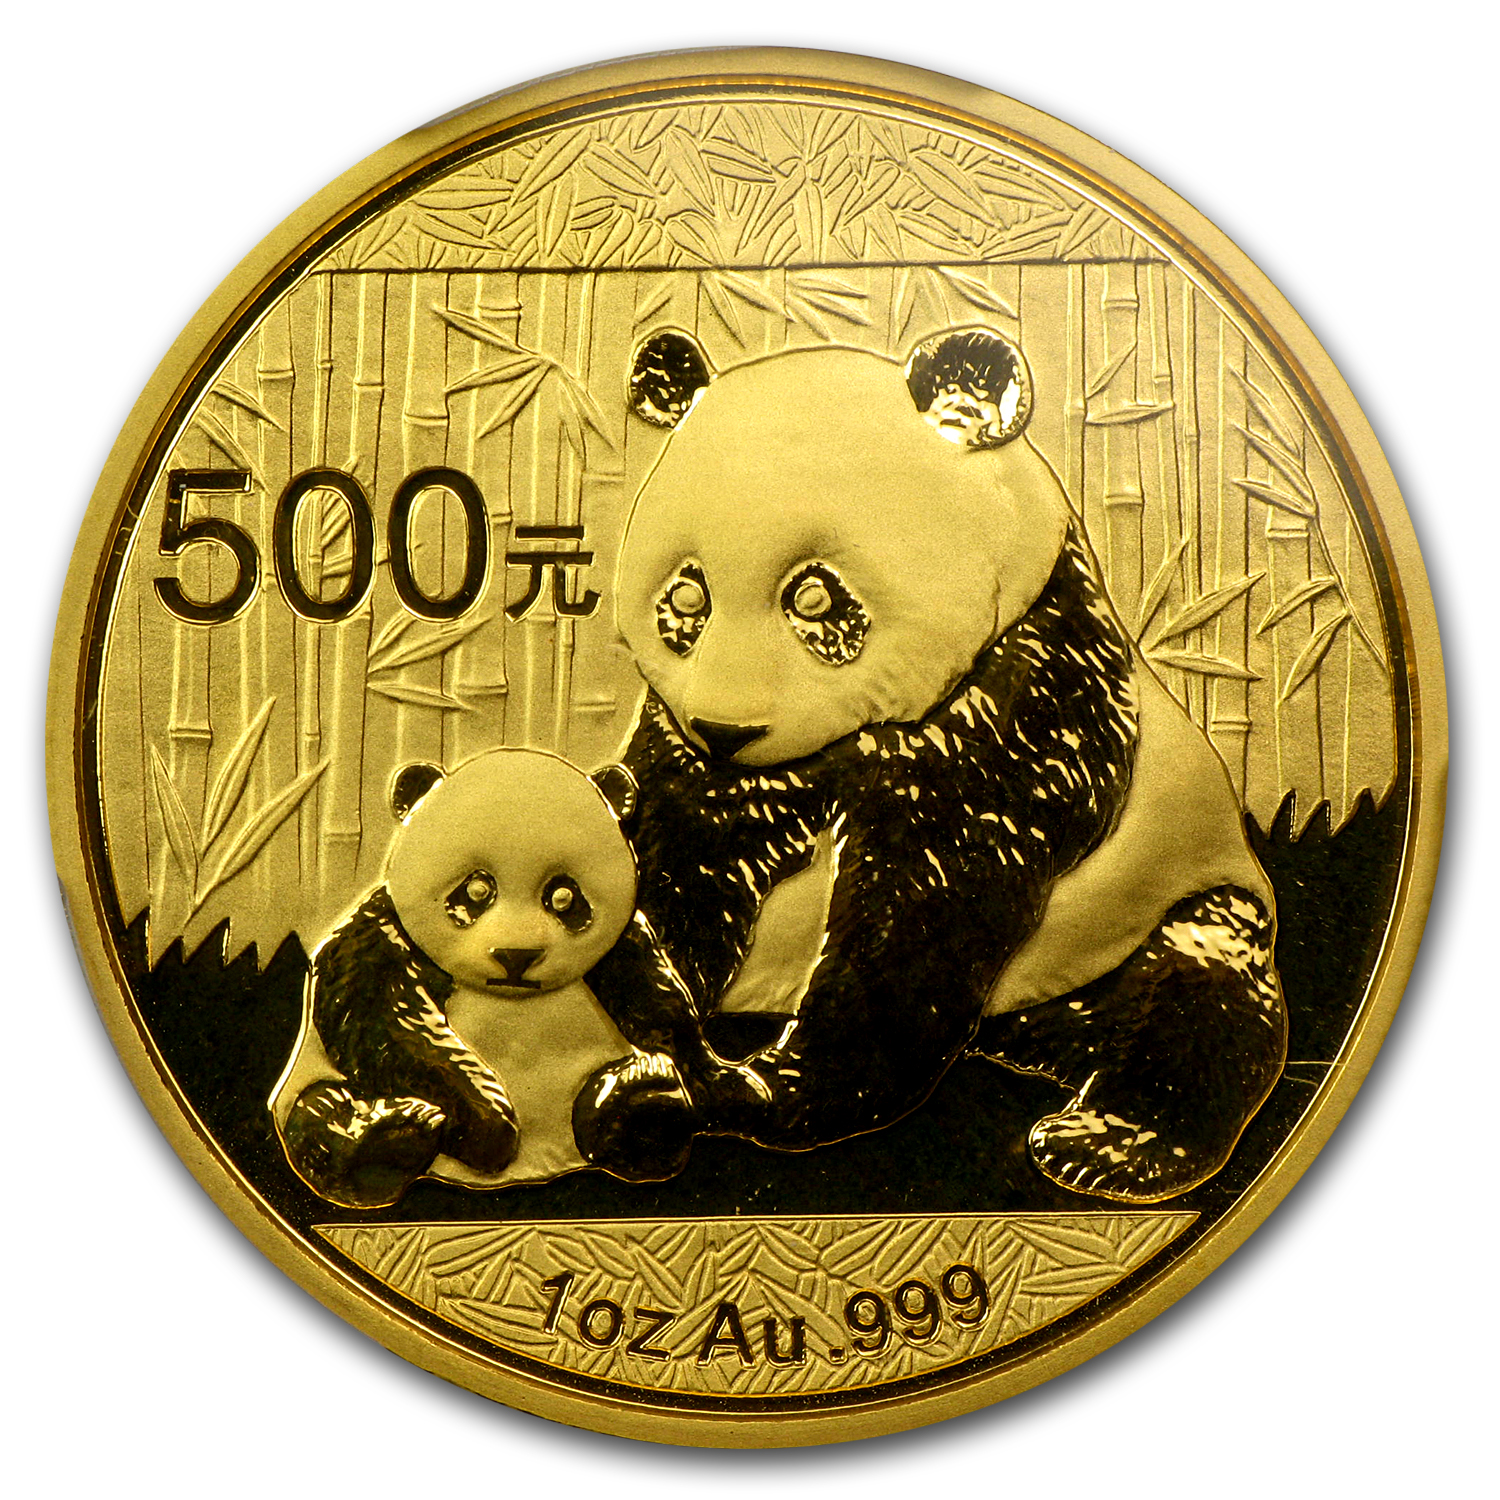 2012 1 oz Gold Chinese Panda MS-69 PCGS (FS)